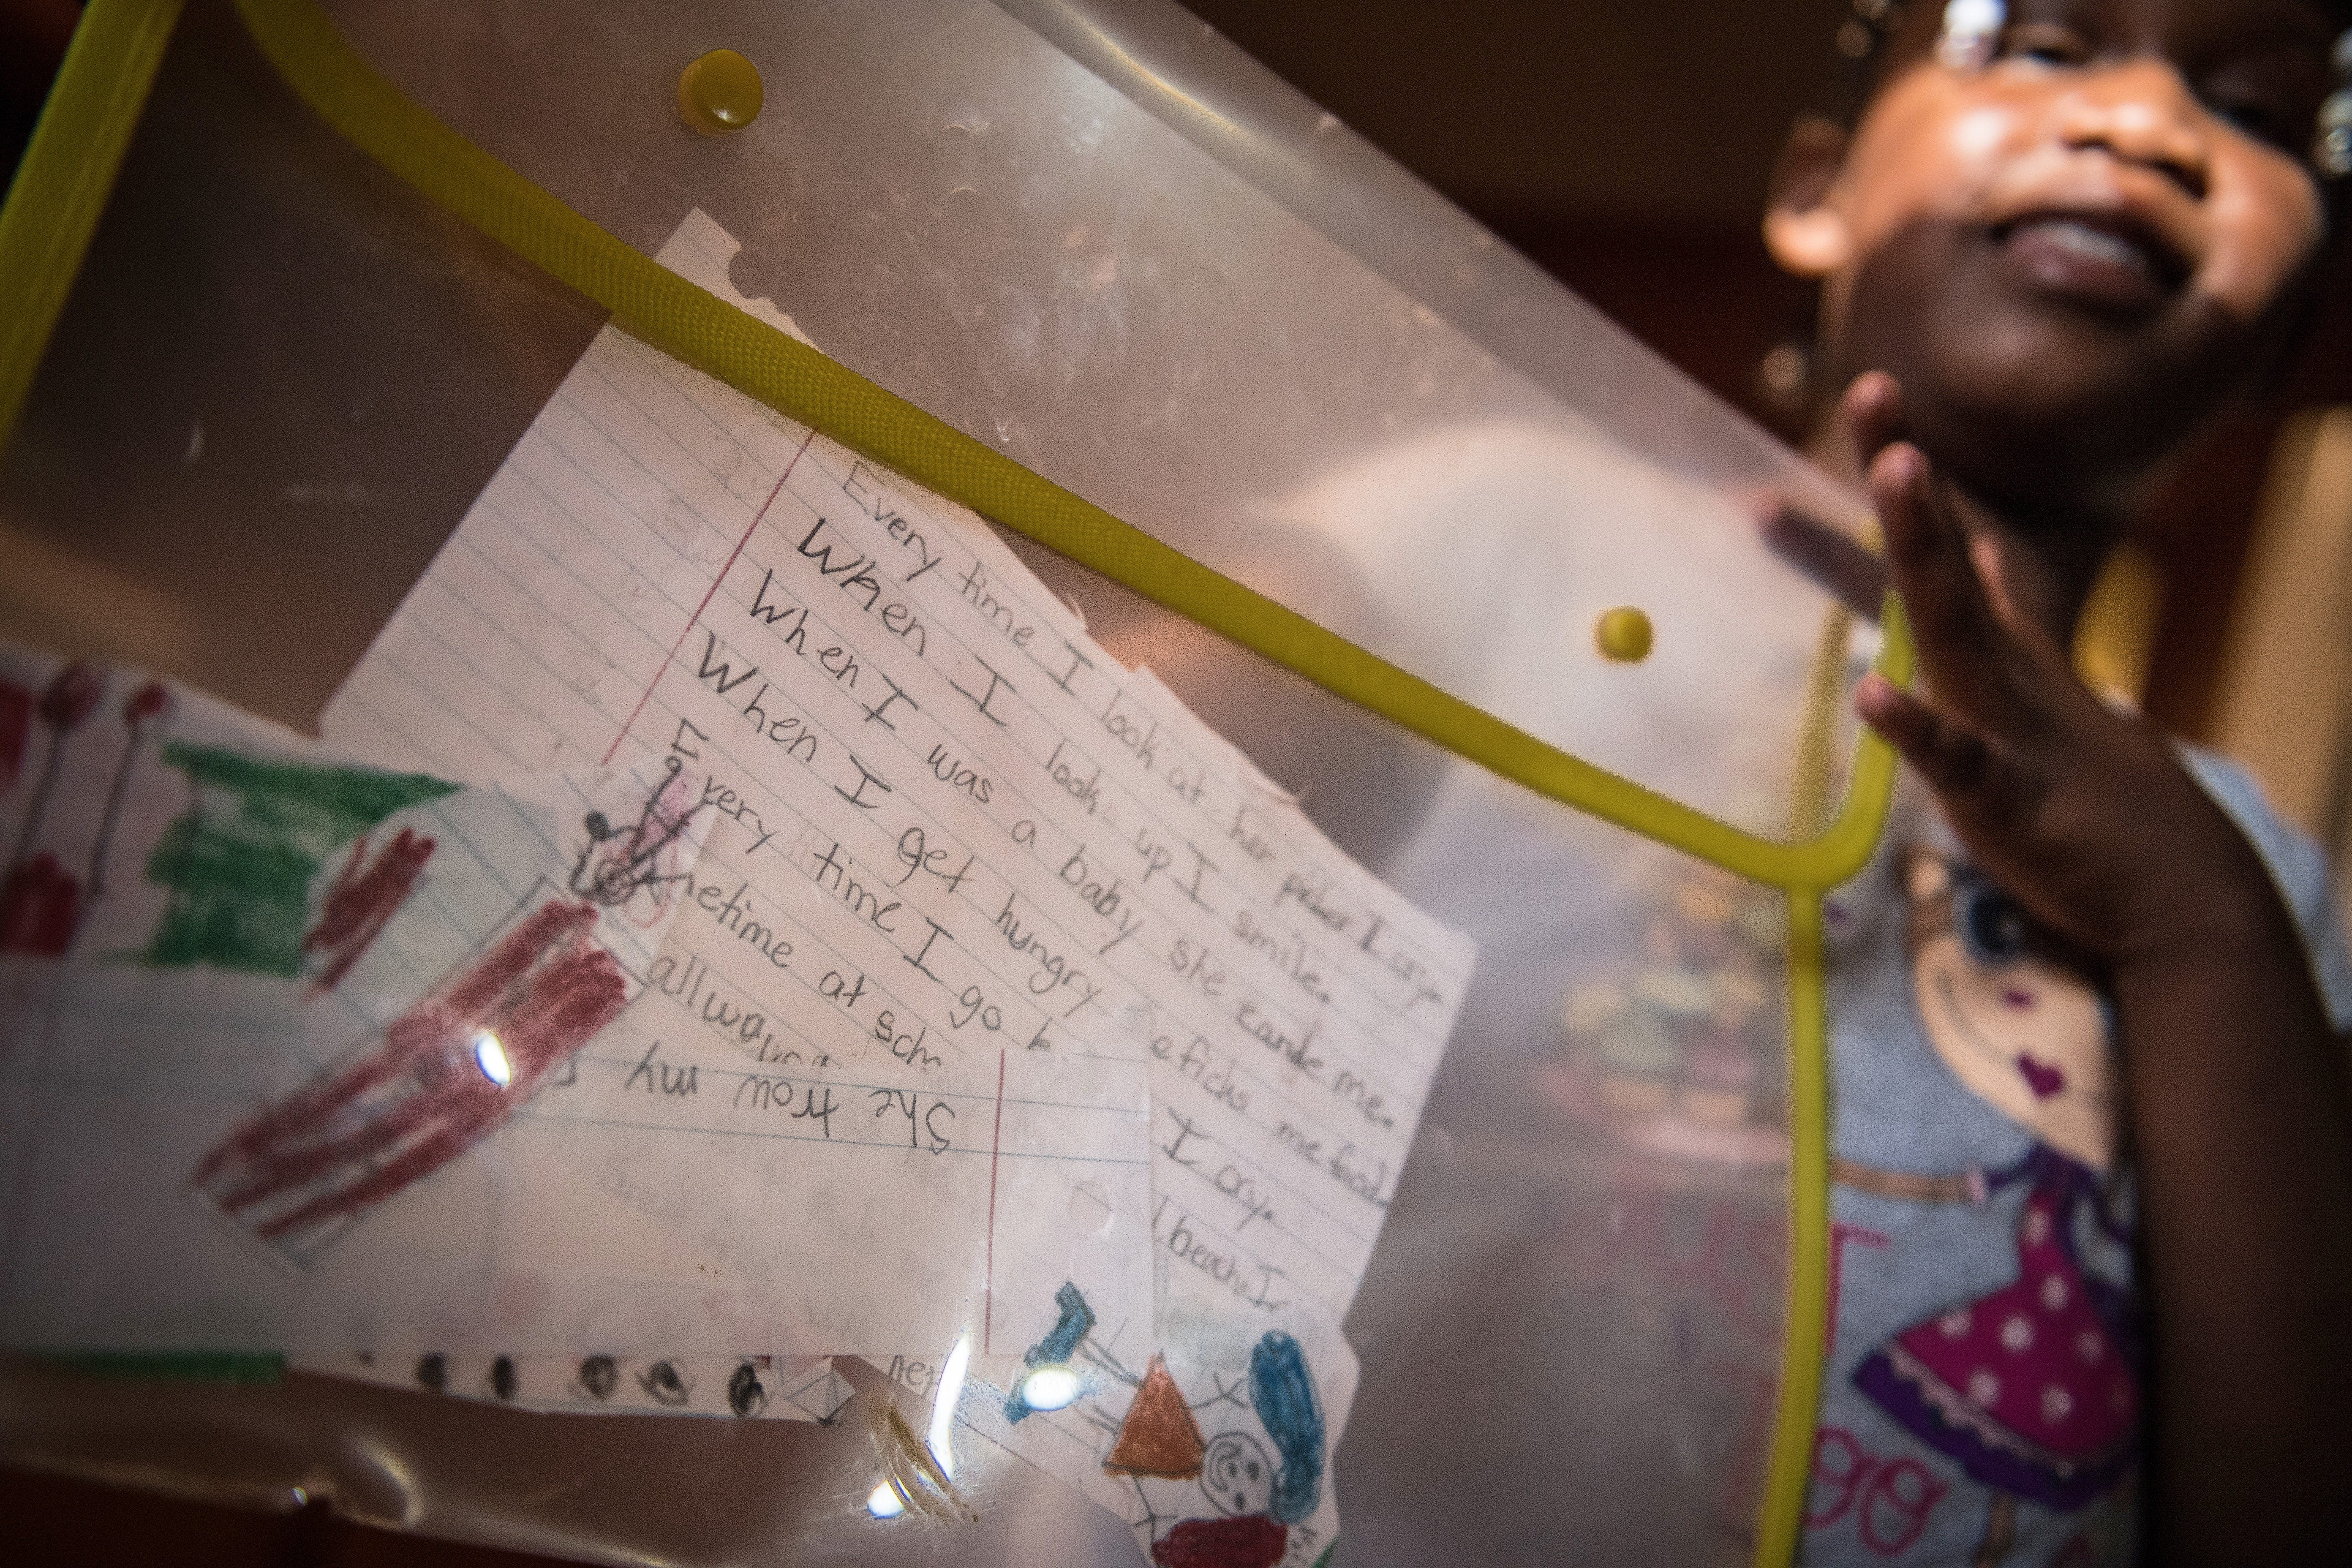 """""""When I look up, I smile,"""" Shekinah Mention wrote about her mother YoLanda. She holds up some of her writing and drawings about her mother's life that she has saved at her home in Nesmith, South Carolina."""